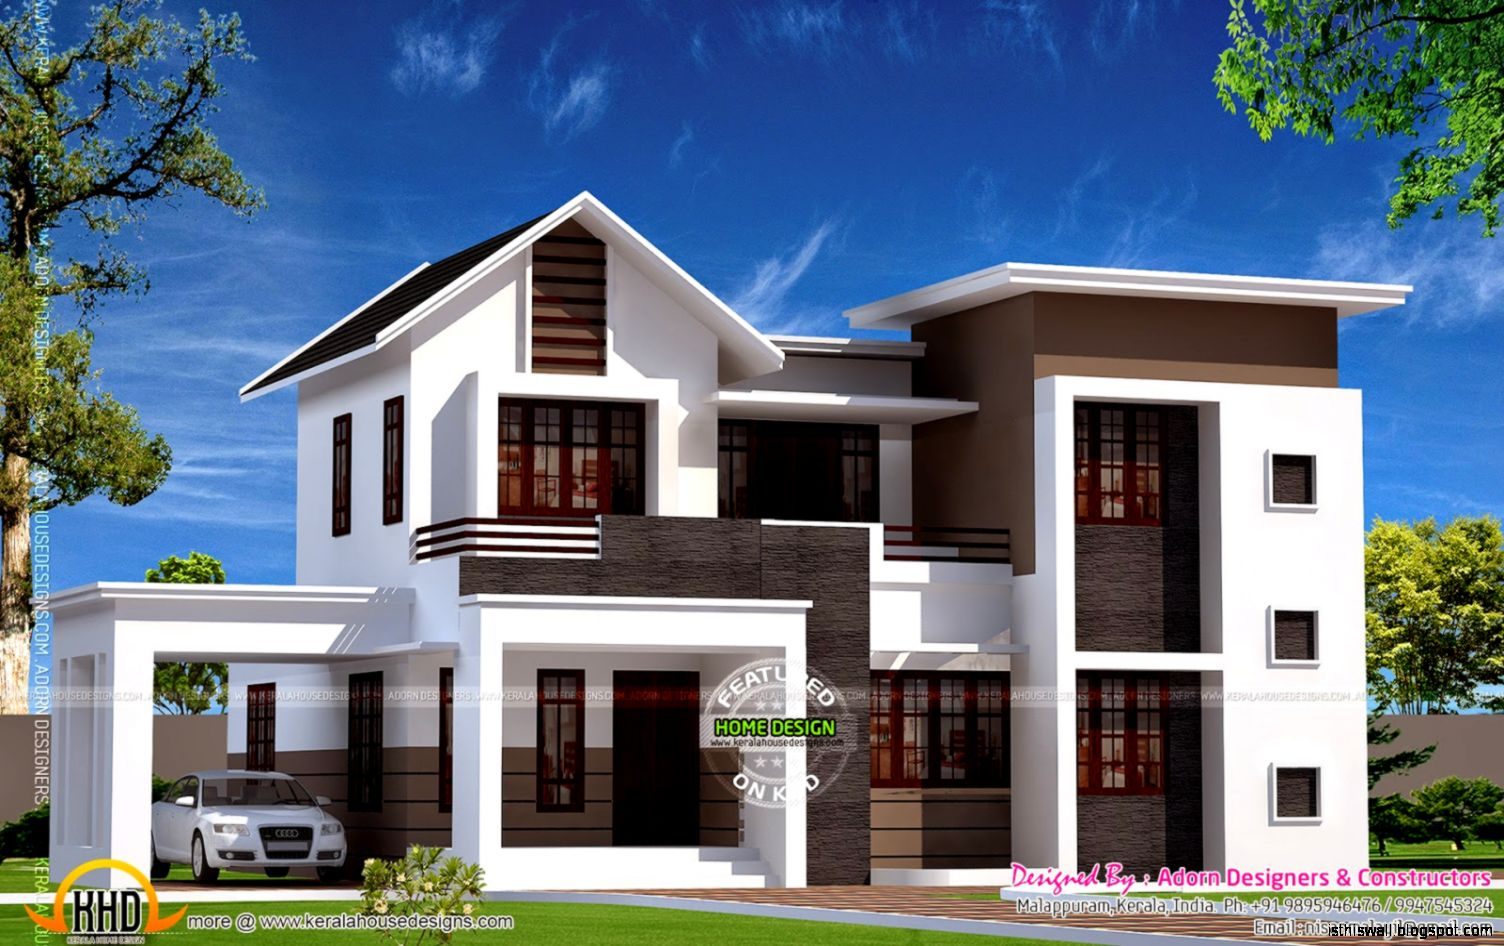 Home houses design this wallpapers for South indian small house designs